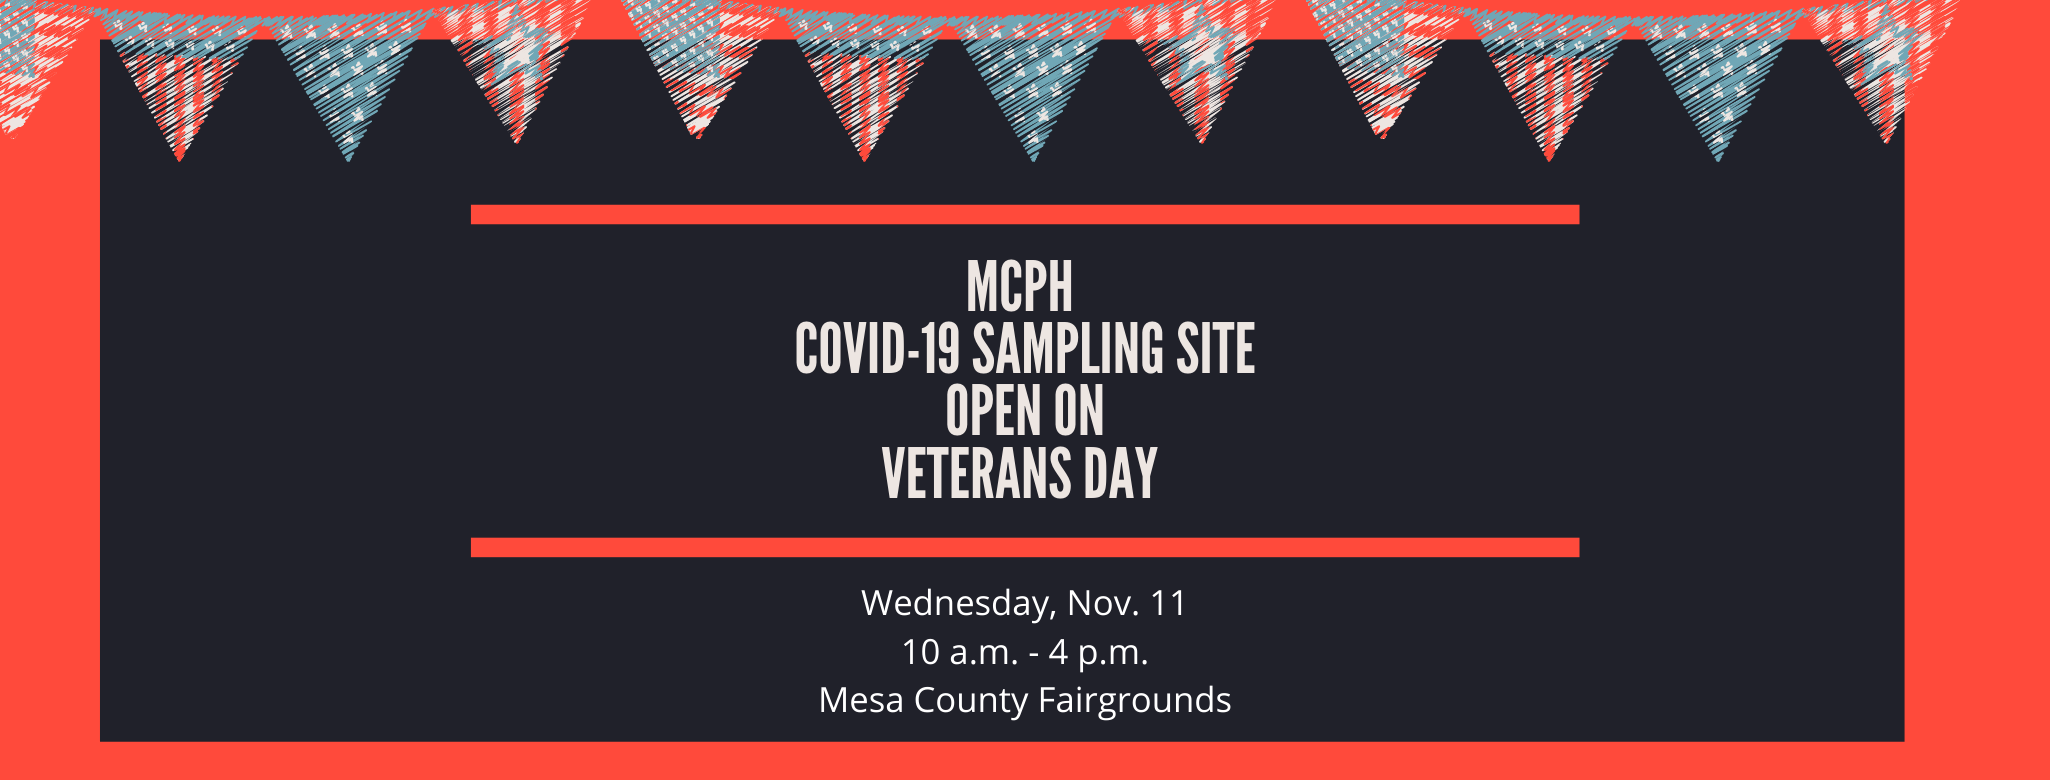 COVID-19 Community Sampling Site Open on Veterans Day